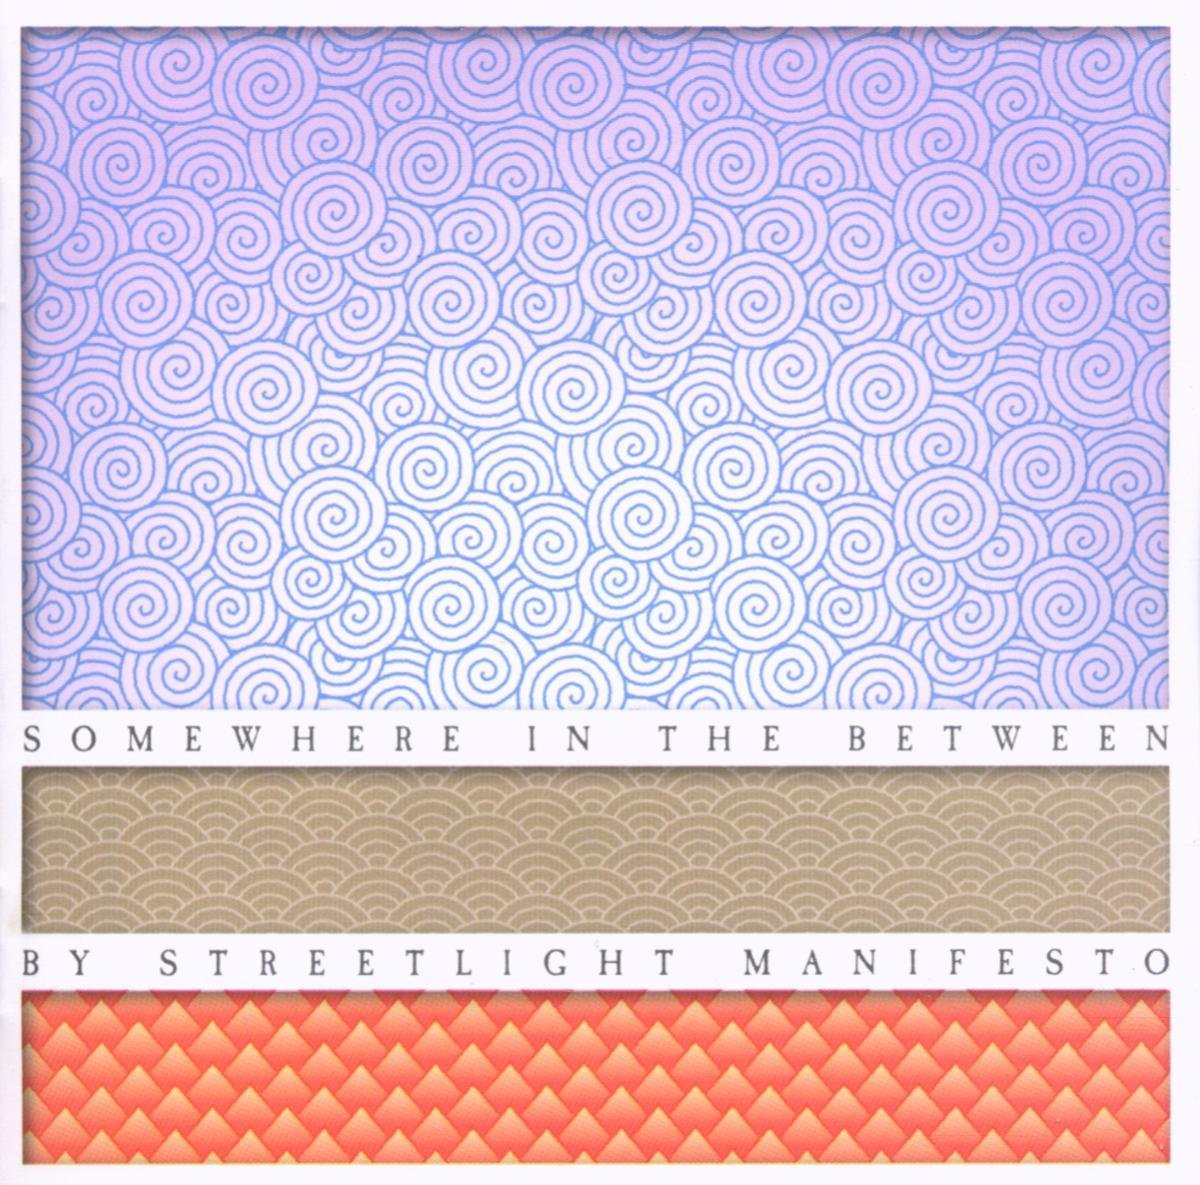 Somewhere In The Between By Streetlight Manifesto by Victory Records